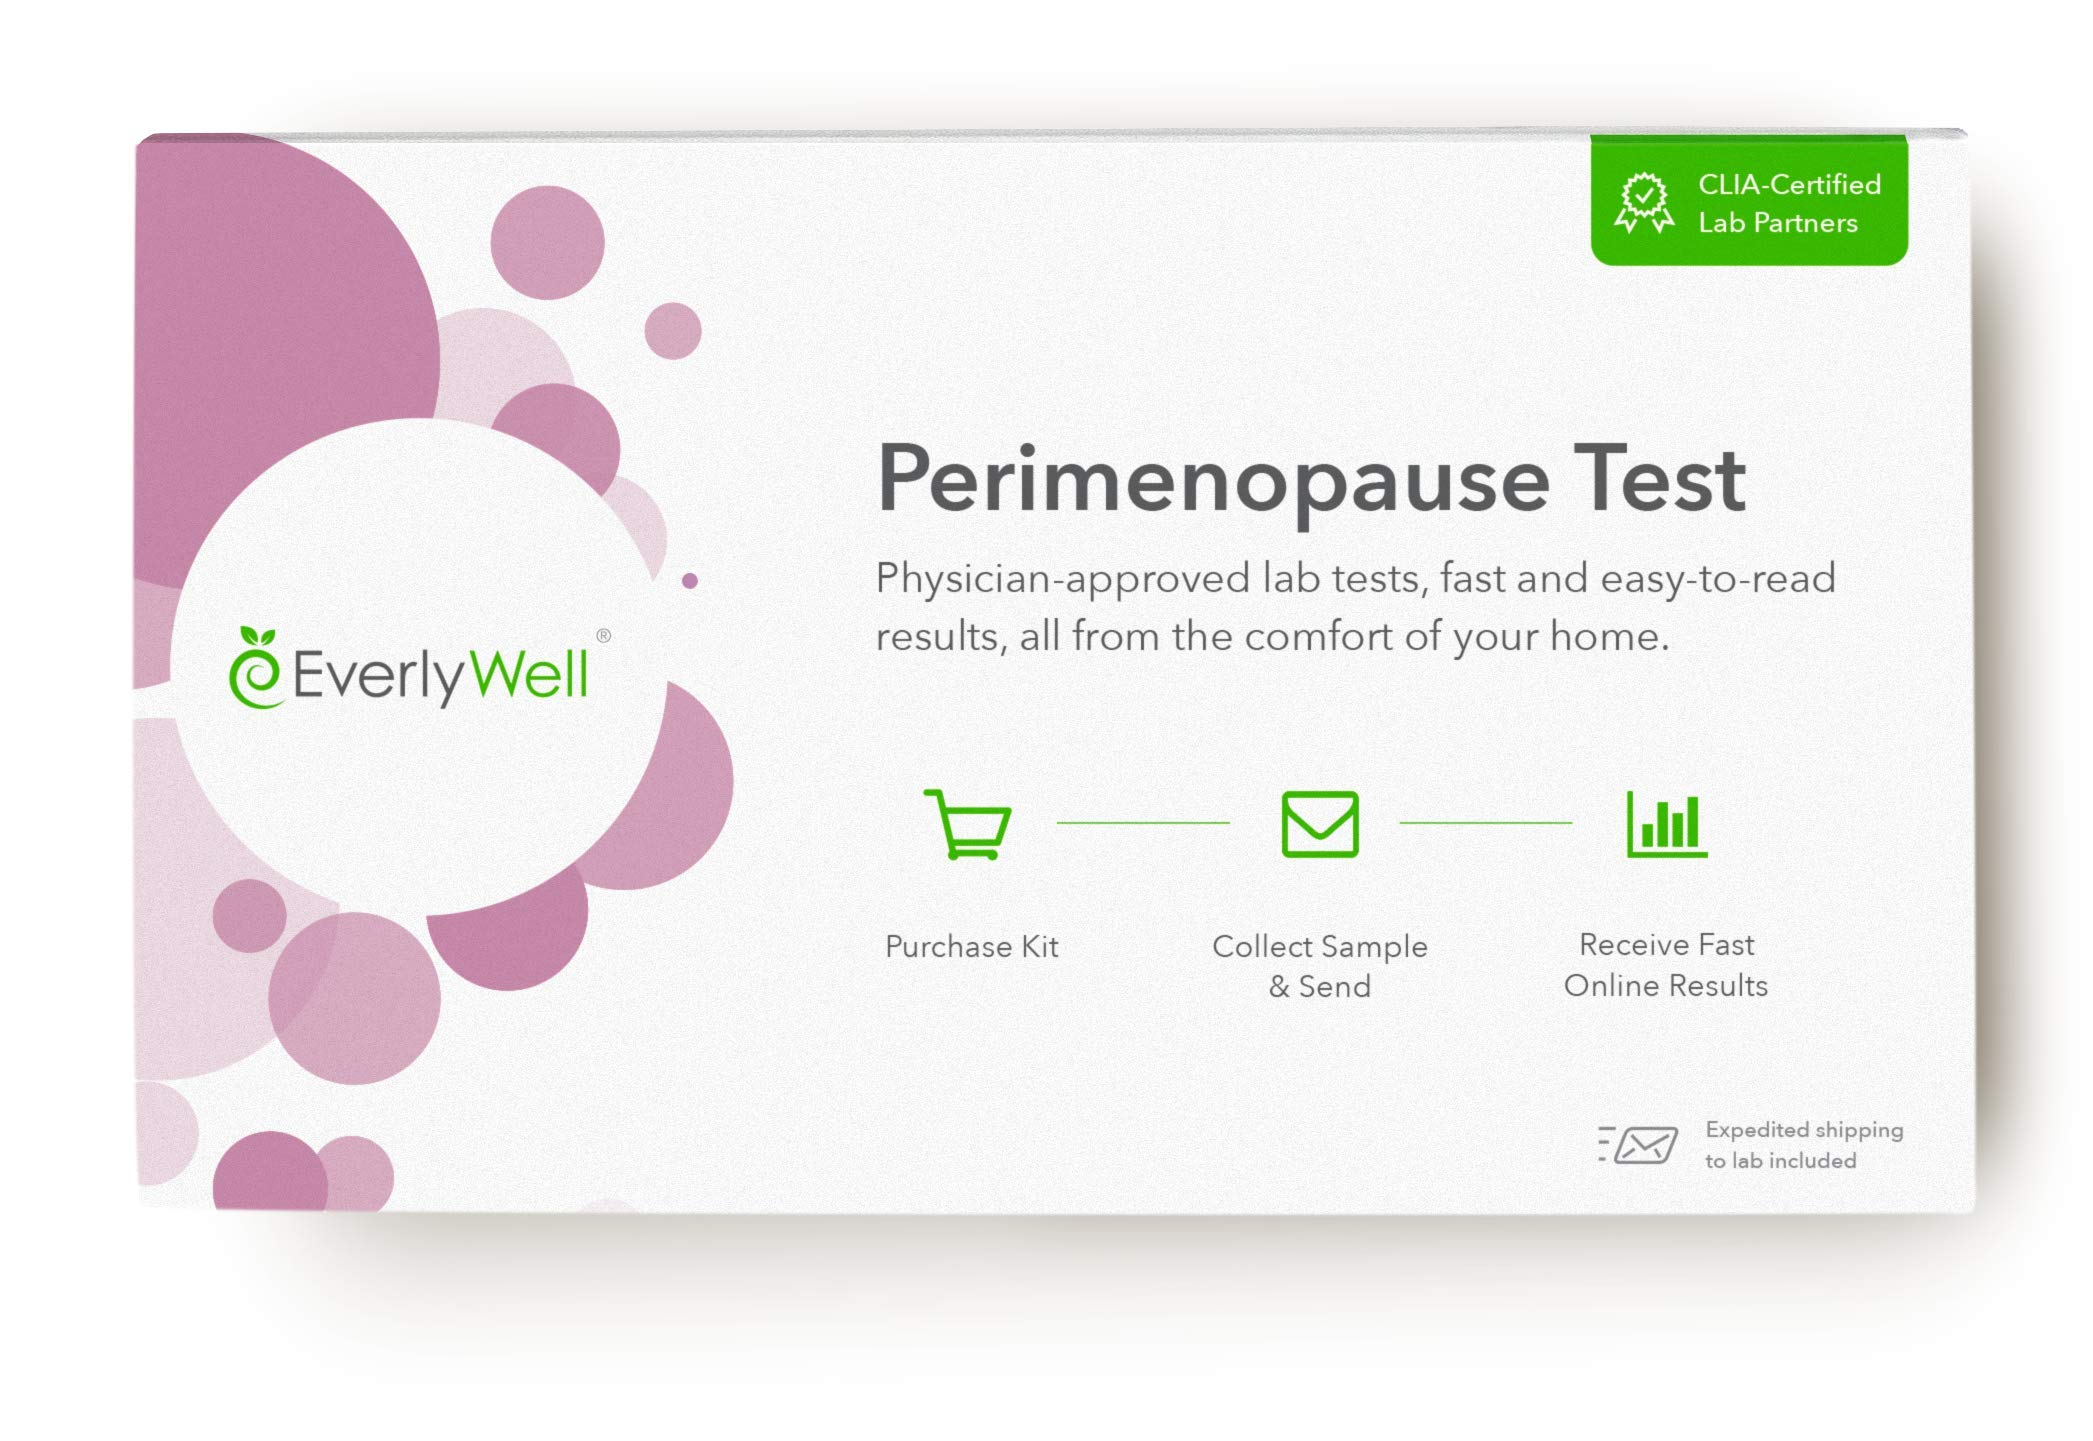 EverlyWell - at-Home Perimenopause Test - Check in with Key Hormones Levels That May Be Changing as You Age (Not Available in RI, MD, NY, NJ)